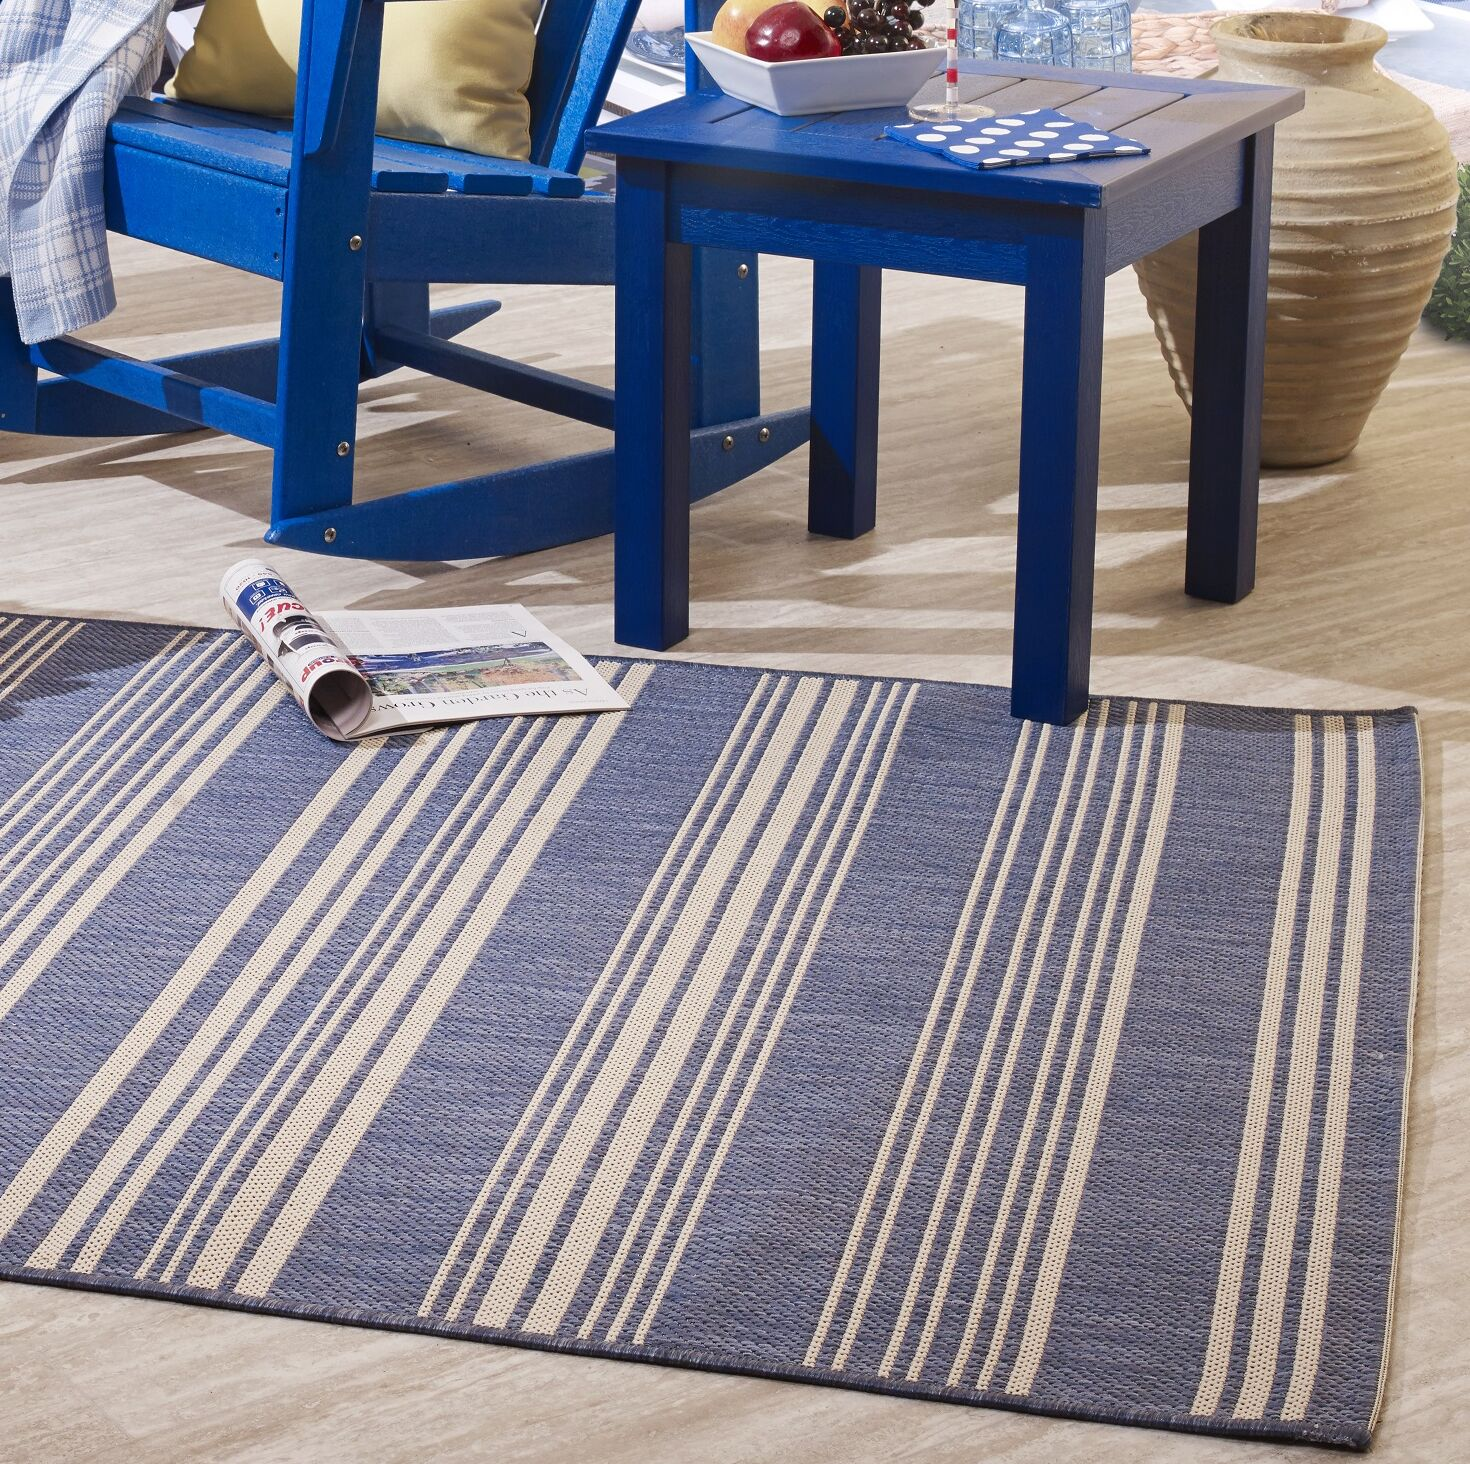 Wrington Stripe Blue Indoor/Outdoor Area Rug Size: Rectangle 7'9